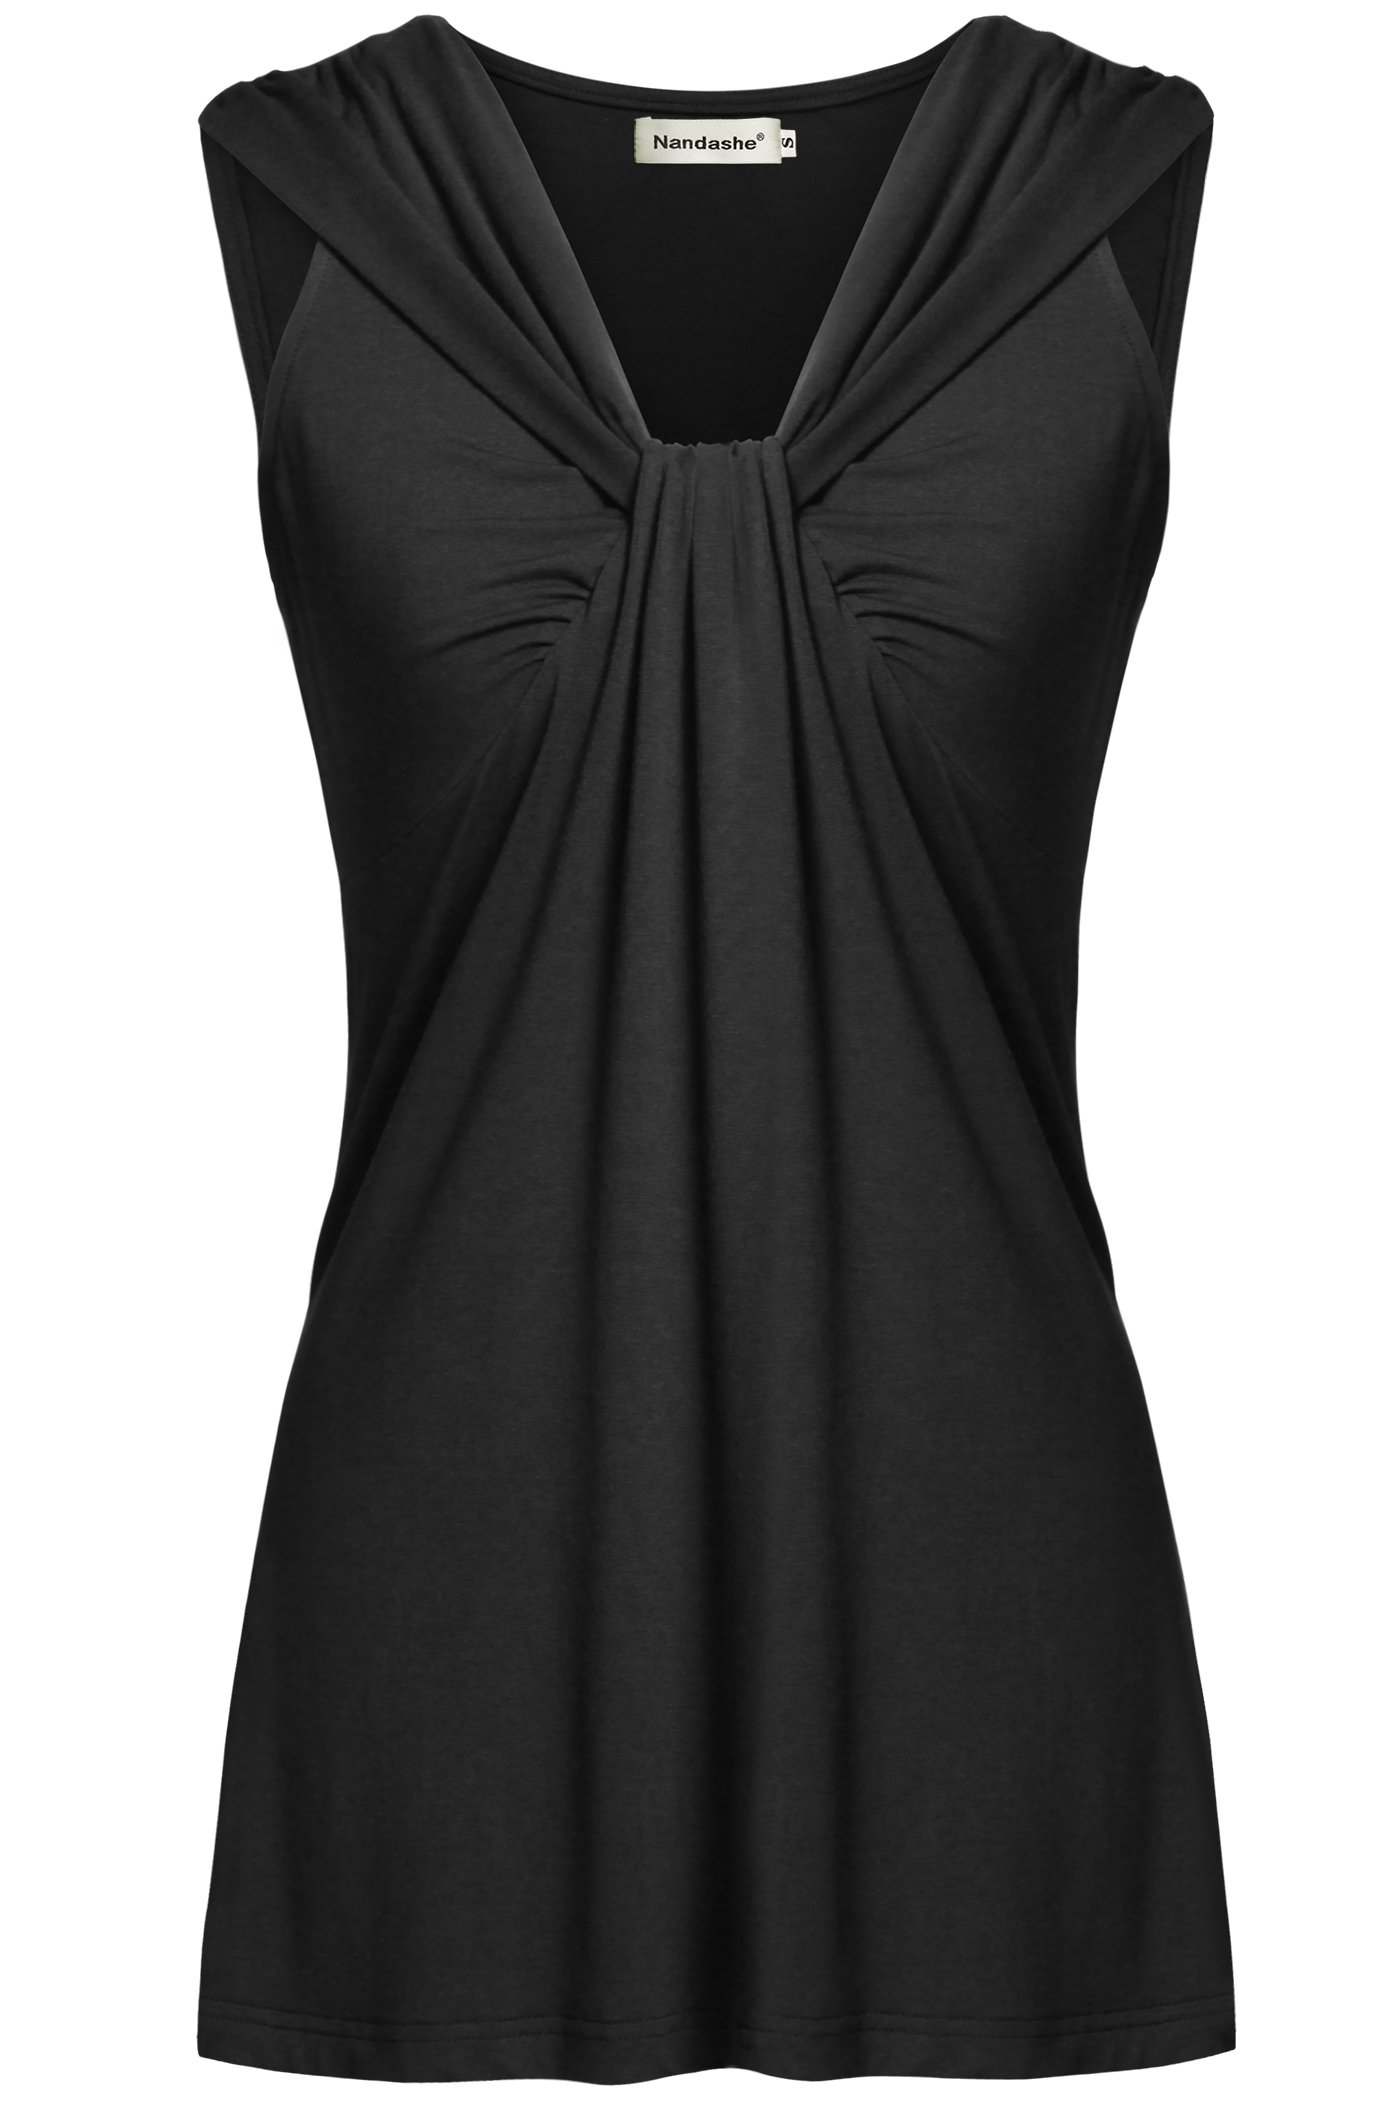 Nandashe Plus Size Summer Tops, Summer New Young Women V Neckline Casual Empire Waist Solid Pleat Hemline Flowy Dress Shirts Summer Long Tunic Camis Undershirts Relaxed Attires Black L